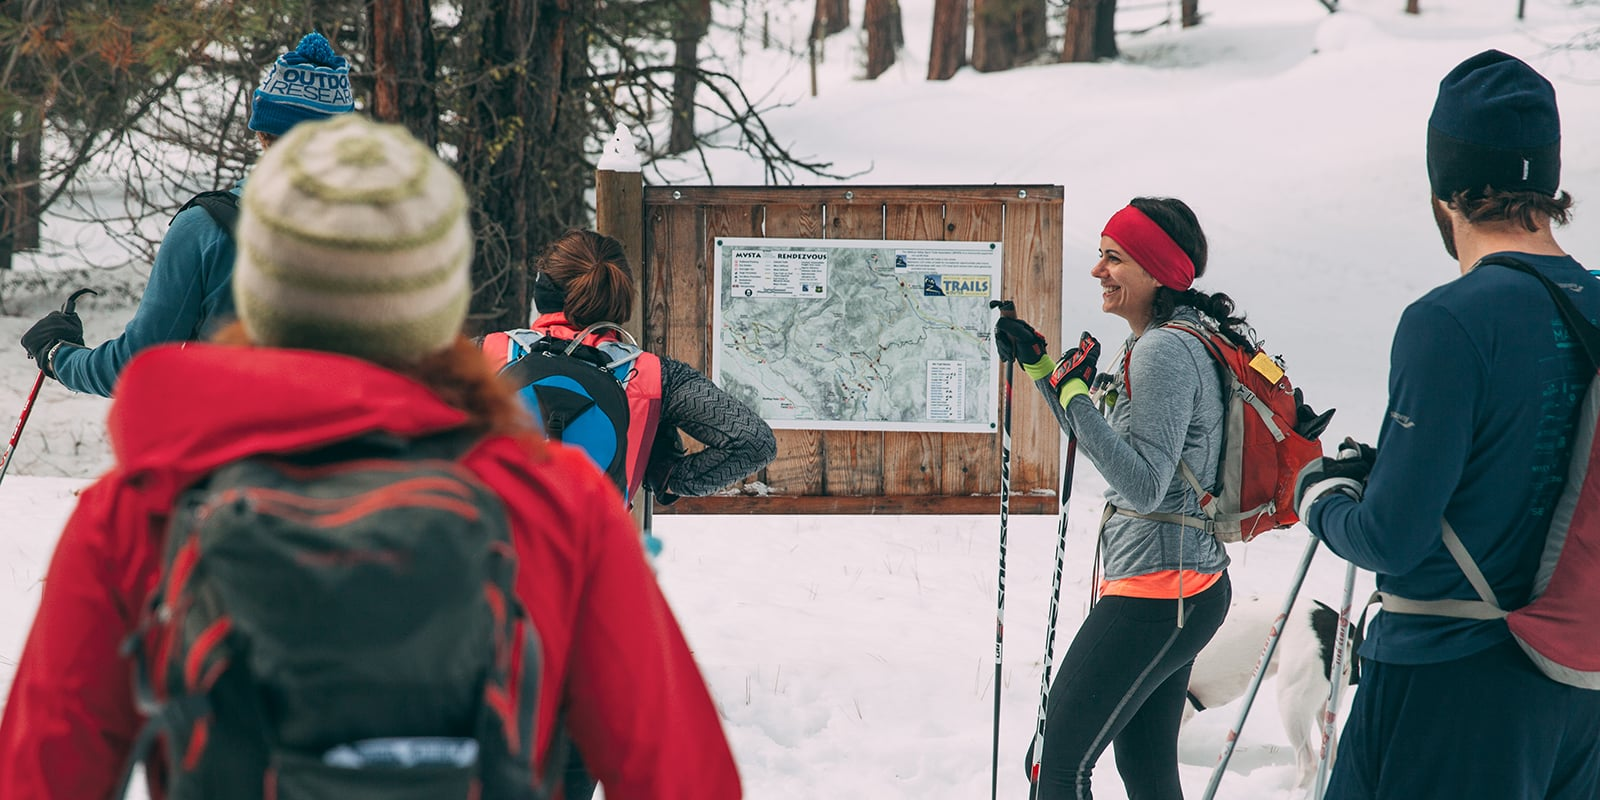 Harnois_012815_0197_Cross_Country_Skiing_Checklist_lg